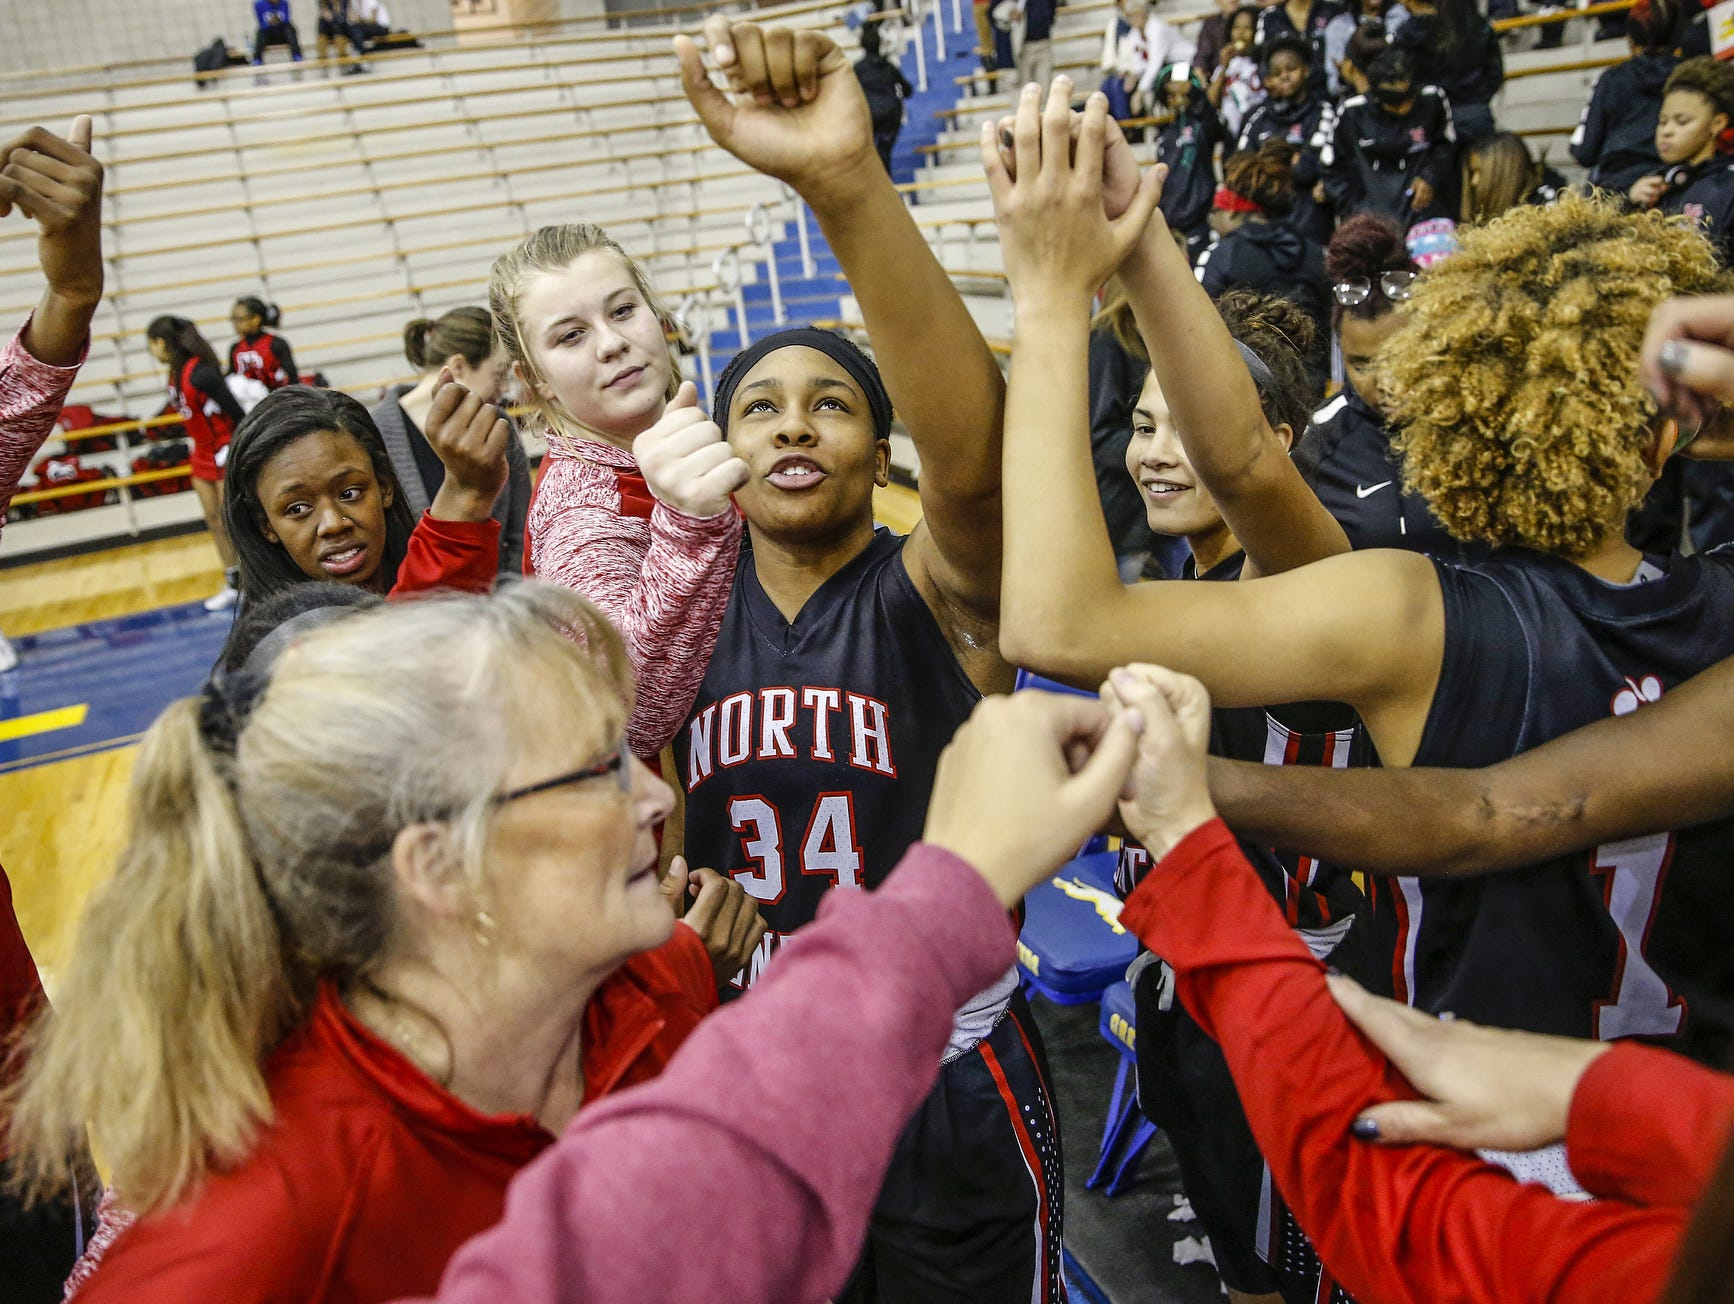 """North Central Panthers' Ajanae« Thomas (34) breaks a huddle with her team before the Panthers' game against the Carmel Greyhounds at Carmel High School on Friday, Dec. 16, 2016. Thomas wears the number 34 in honor of her late mother Nicole who was known as """"Lady Barkley,"""" after Charles Barkley, in the Detroit area."""